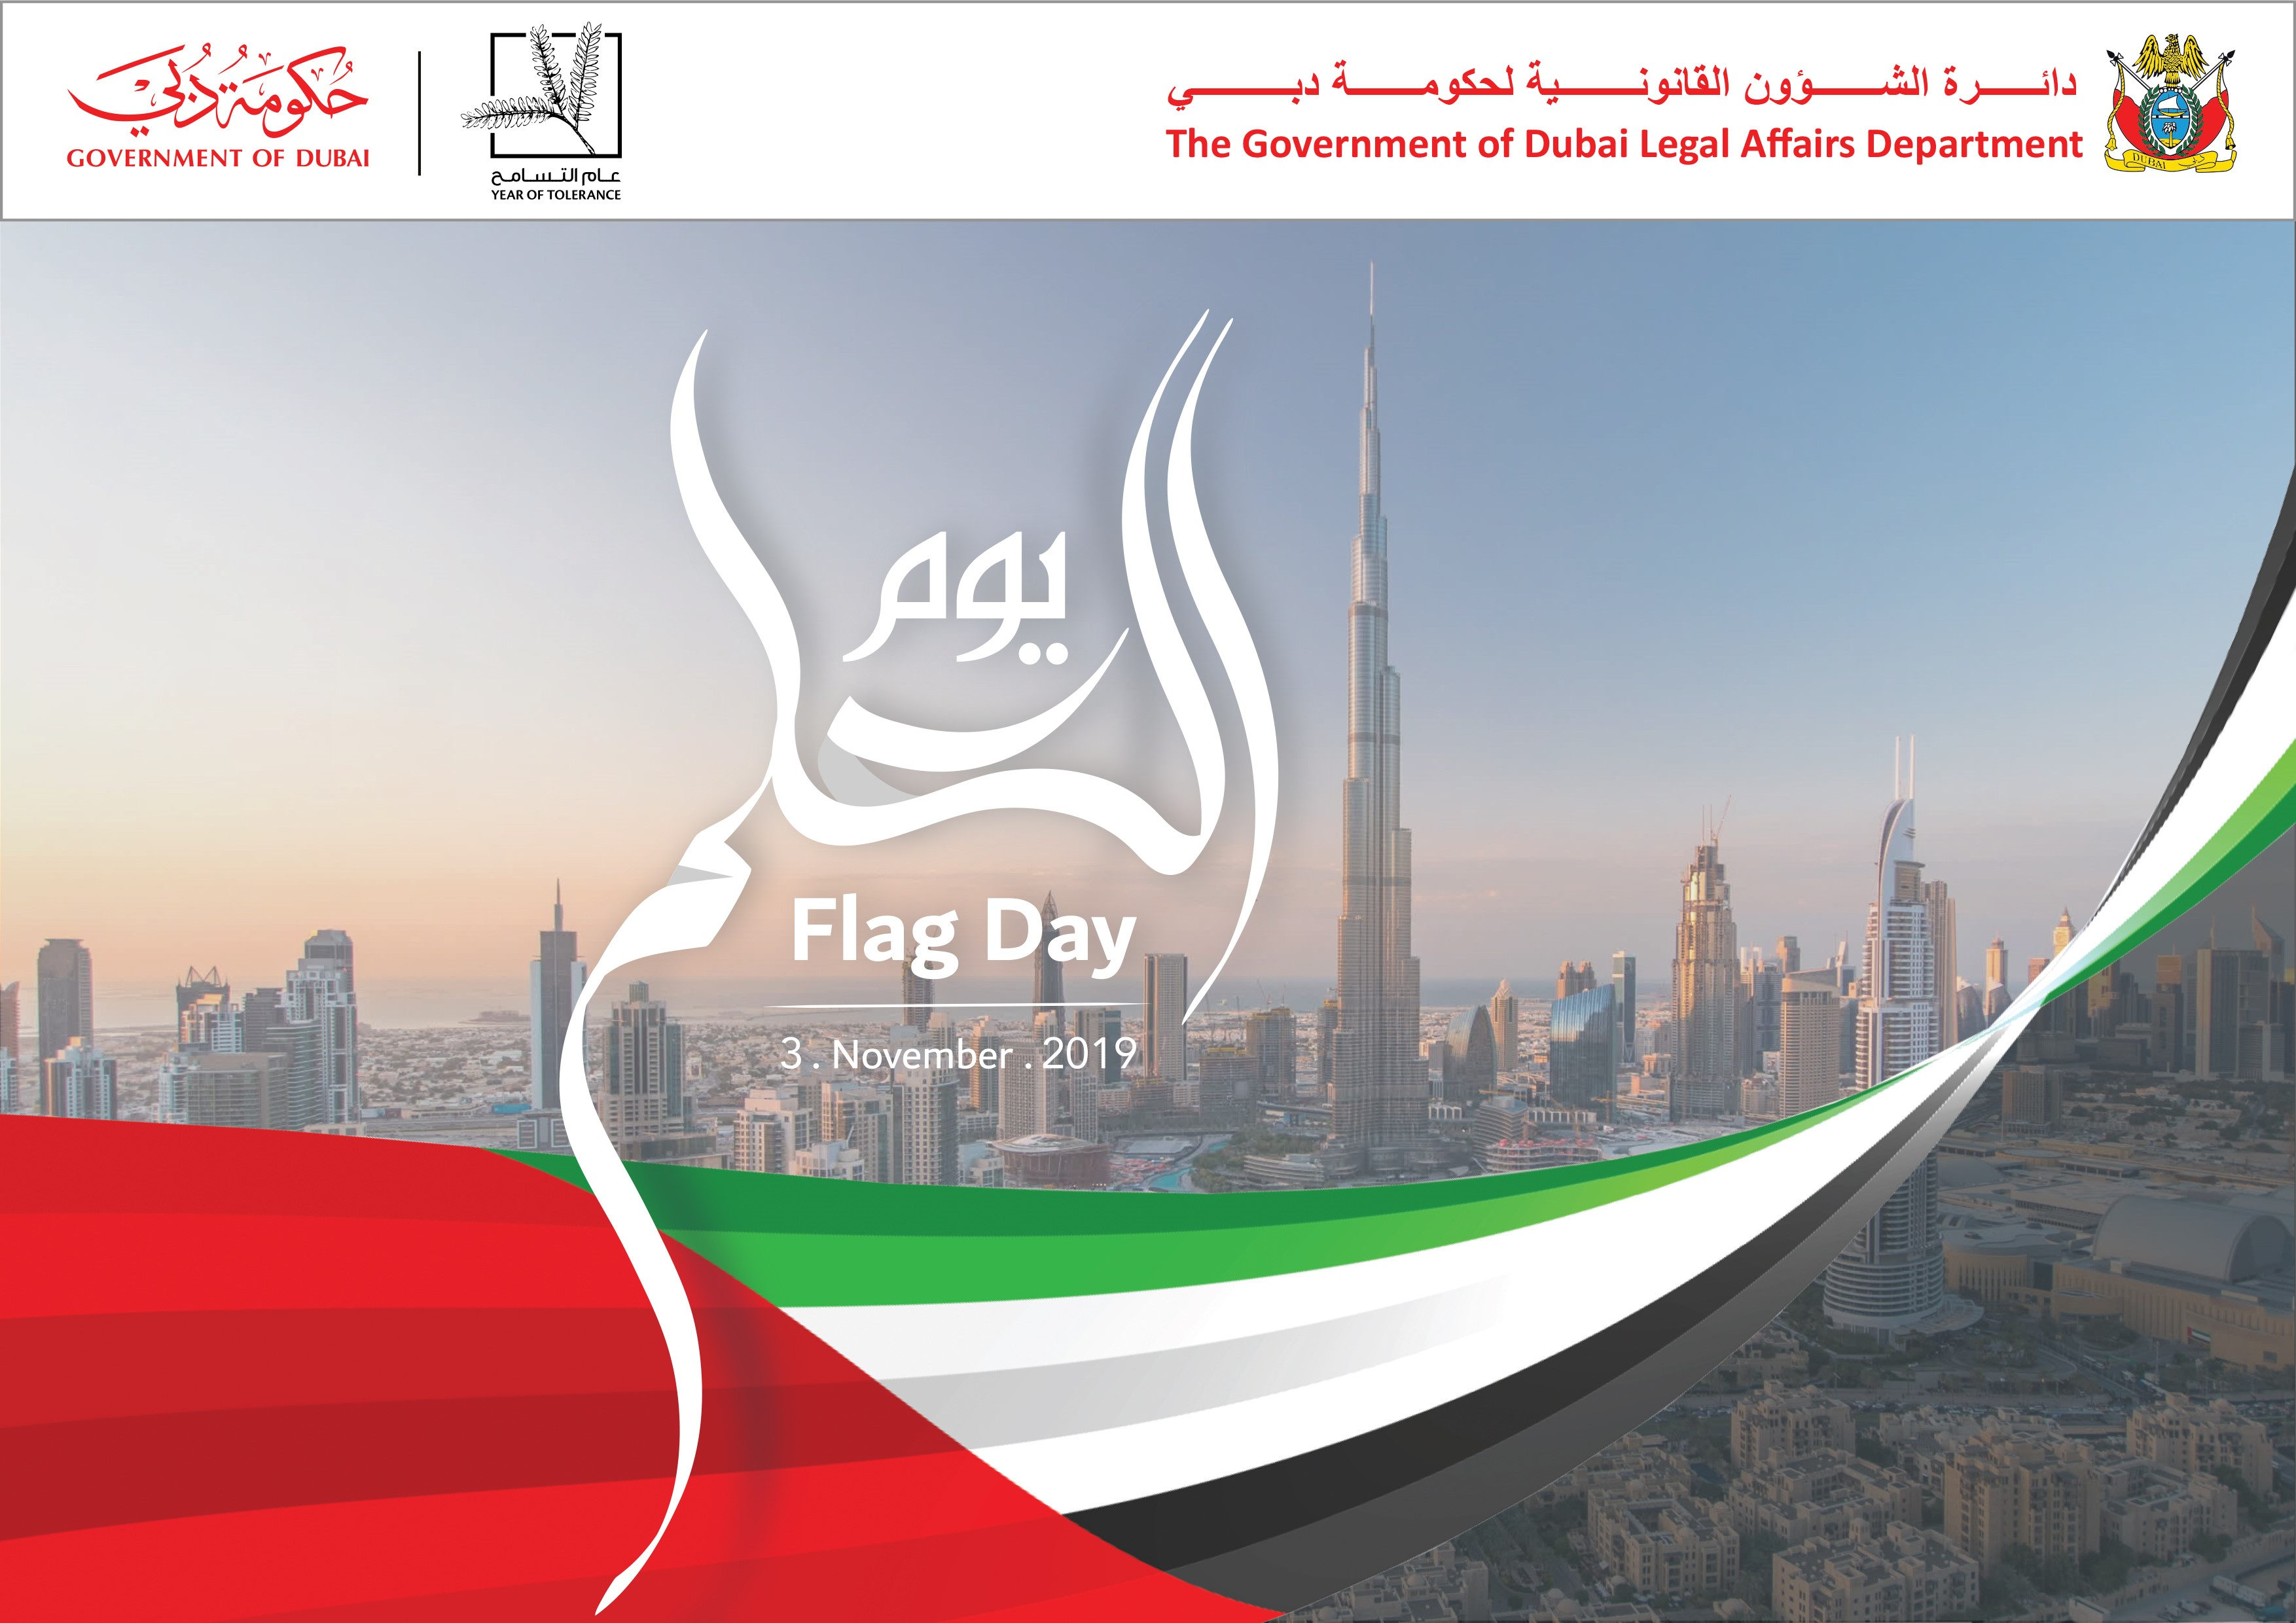 Words of His Excellency Dr. Lowai Mohamed Belhoul, Director General of the Government of Dubai Legal Affairs Department on the Occasion of Flag Day